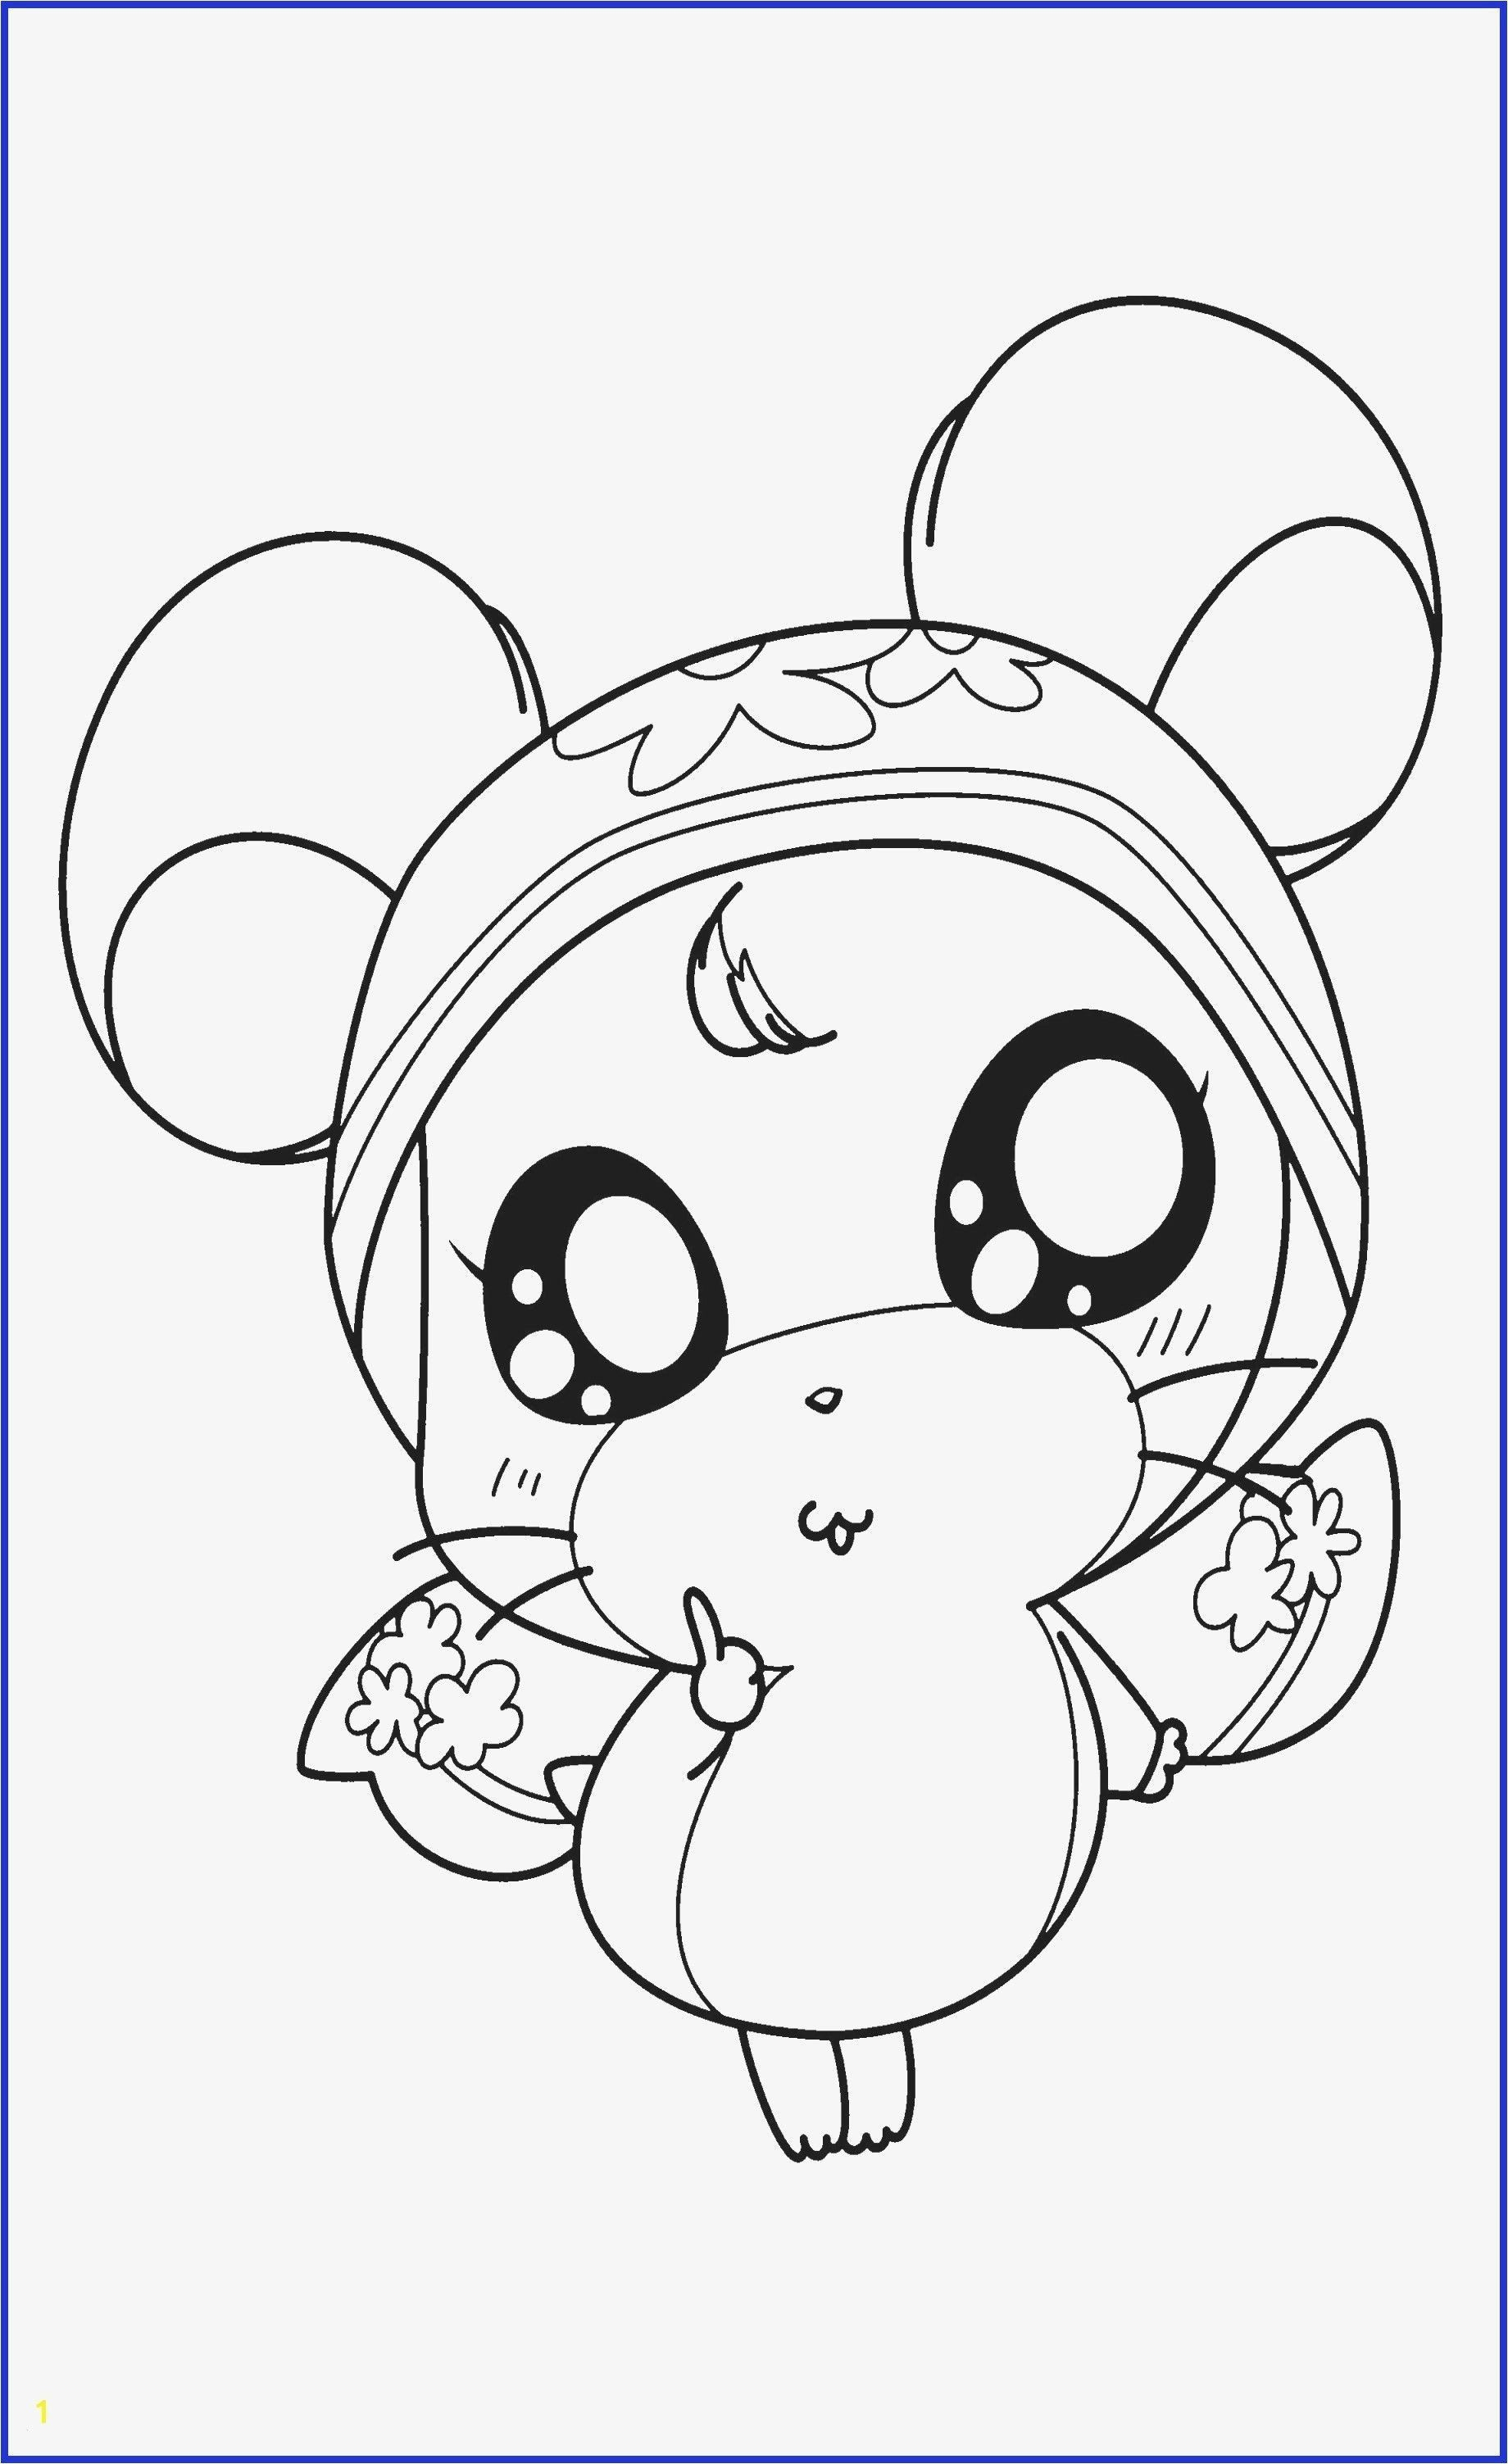 Animal Coloring Sheets Pdf Lovely Awesome Tangled Pdf Coloring Pages Fansites Princess Coloring Pages Mermaid Coloring Pages Pokemon Coloring Pages